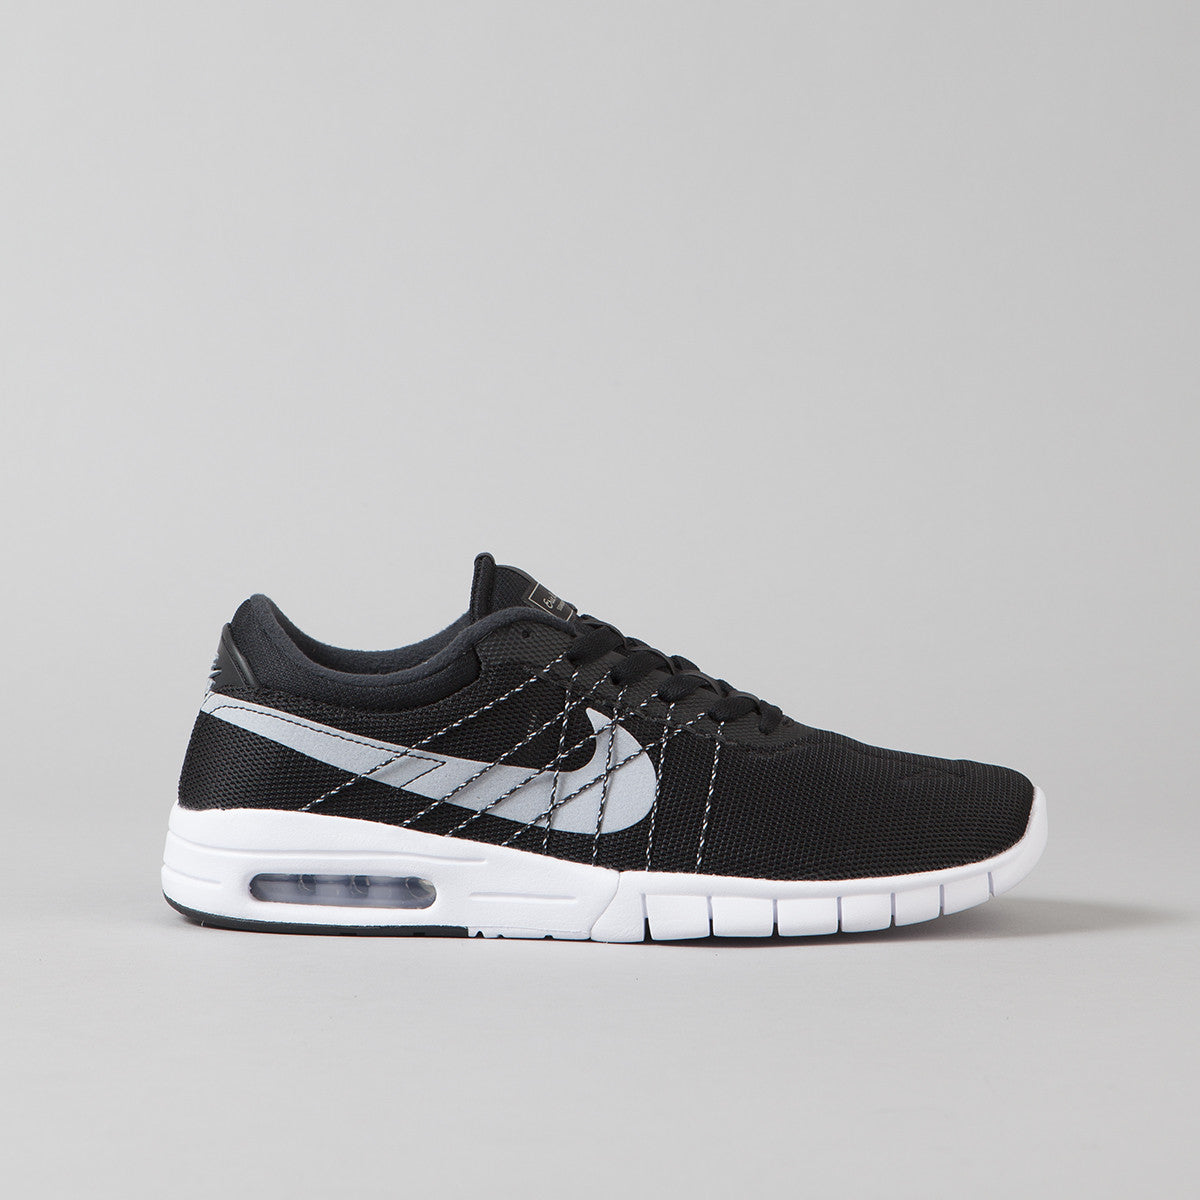 Nike SB Koston Max Shoes